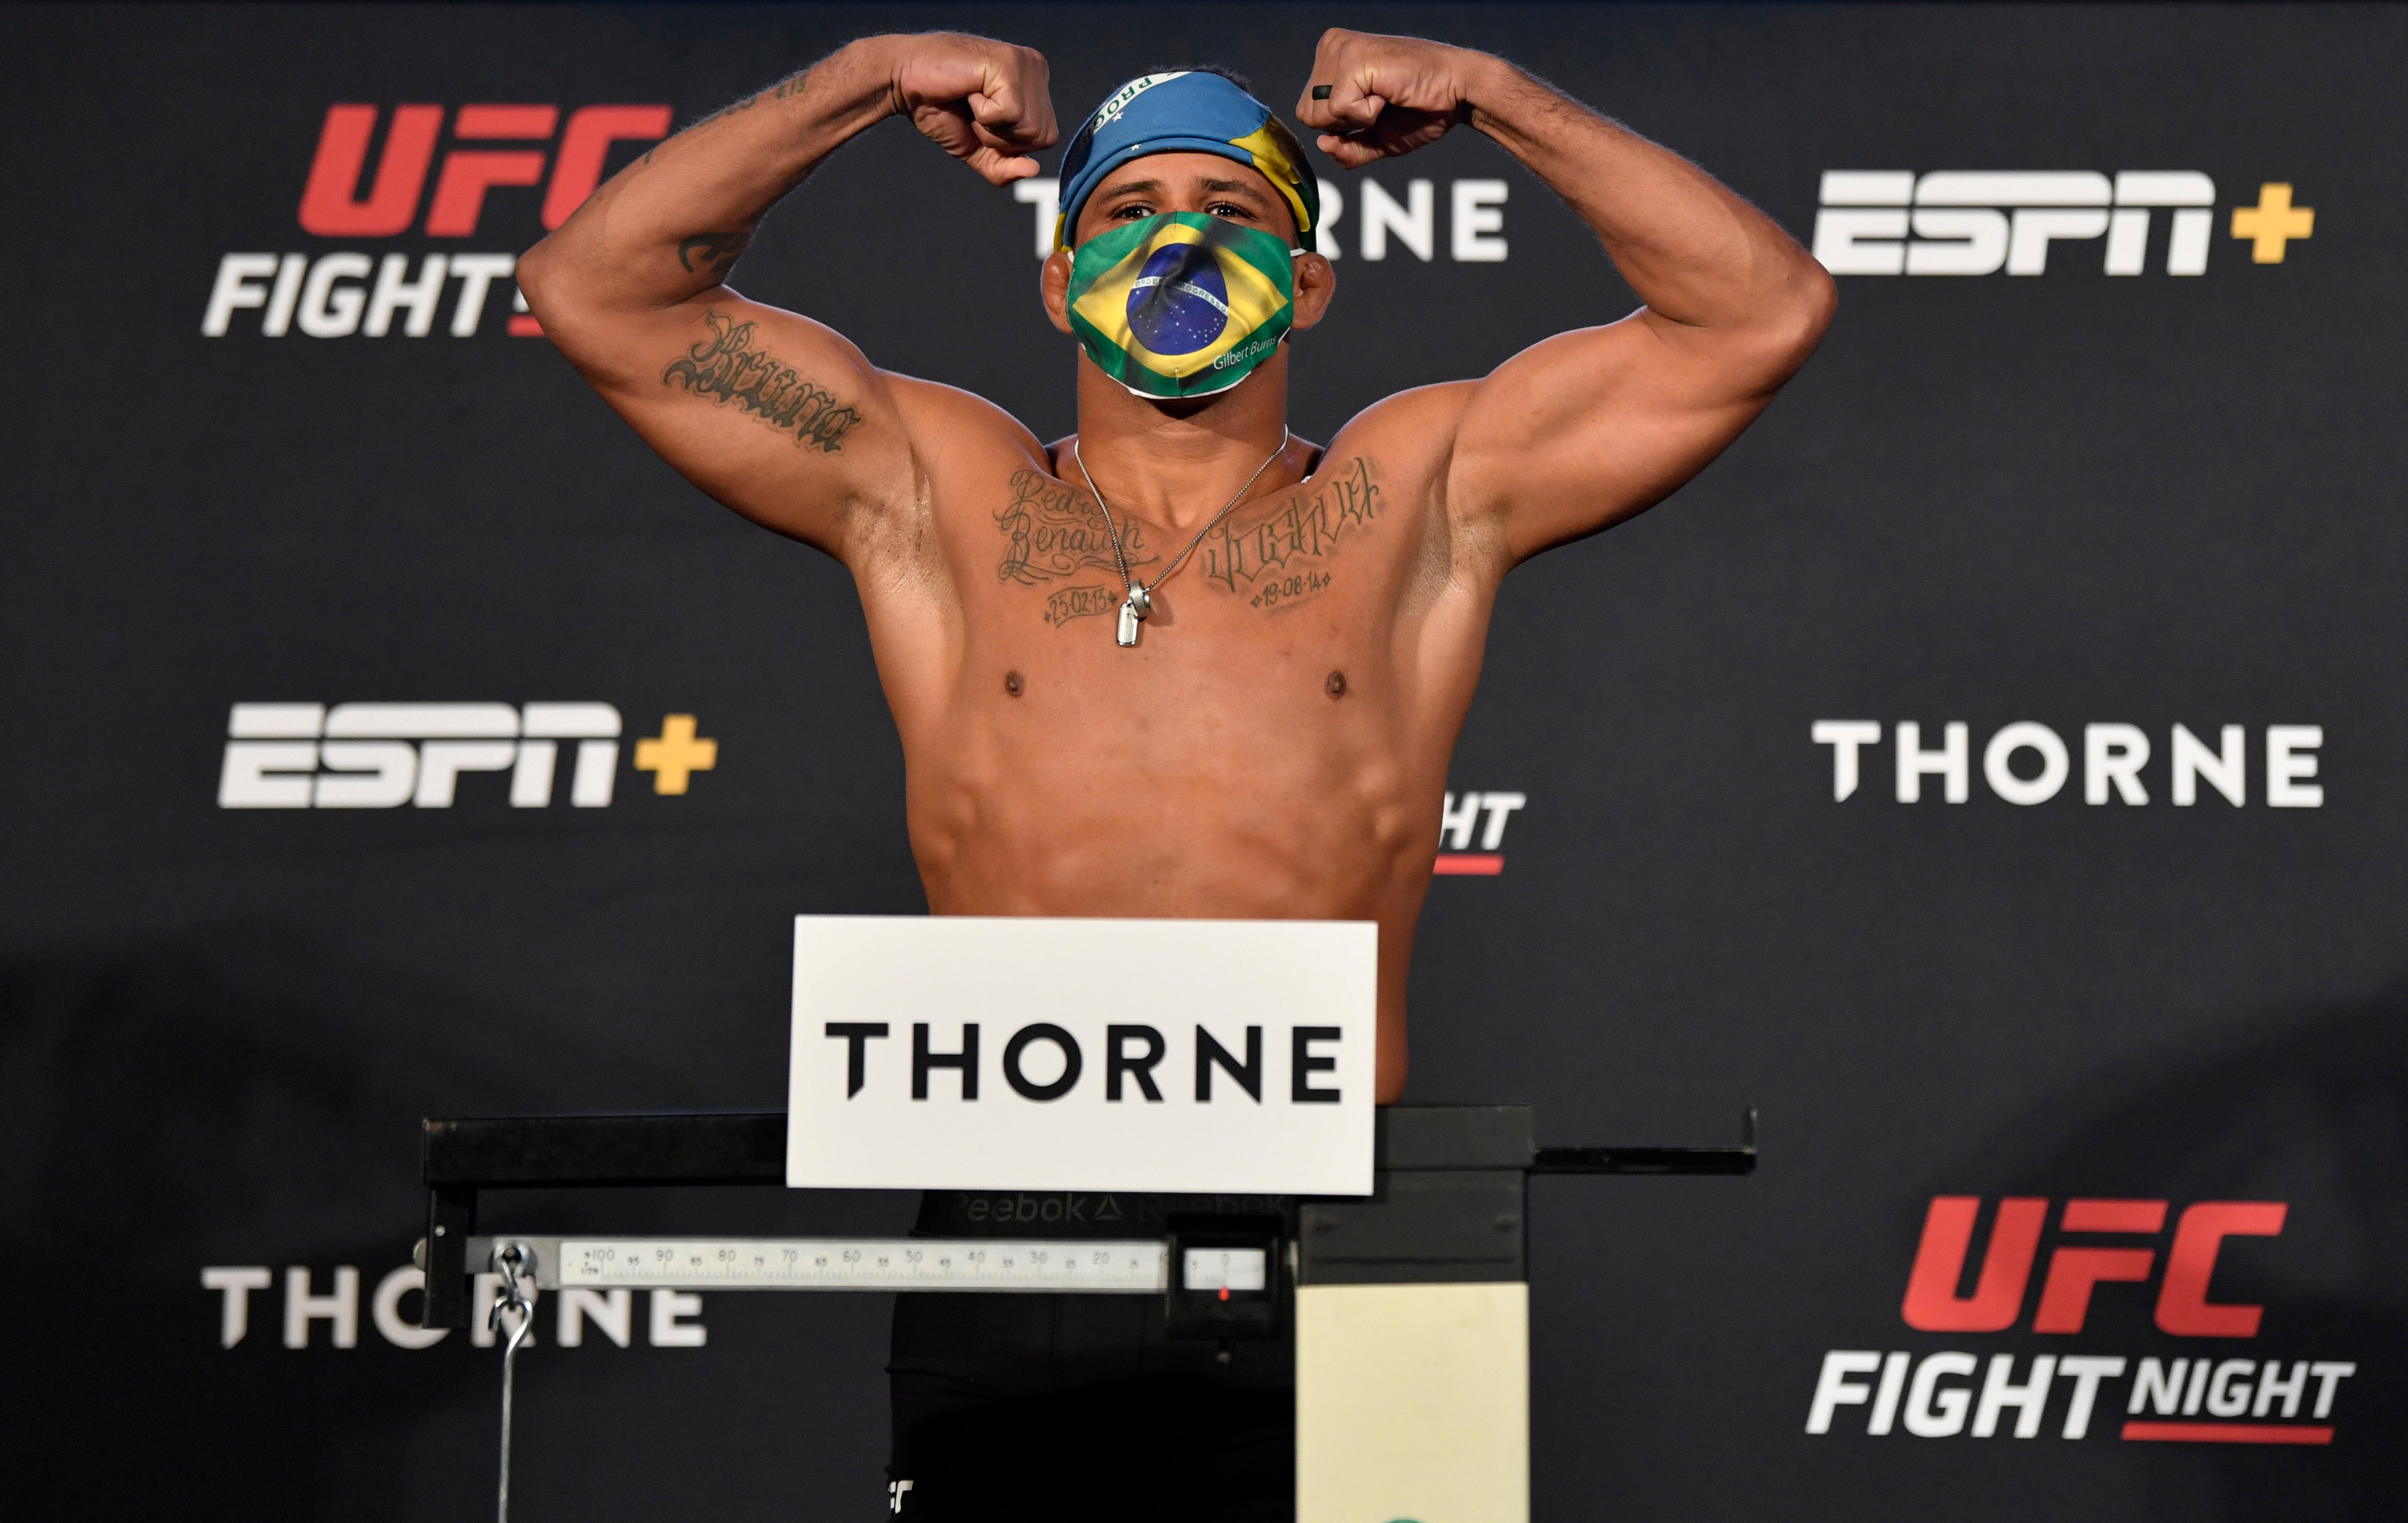 Fighter's positive COVID test scuttles UFC 251 title bout